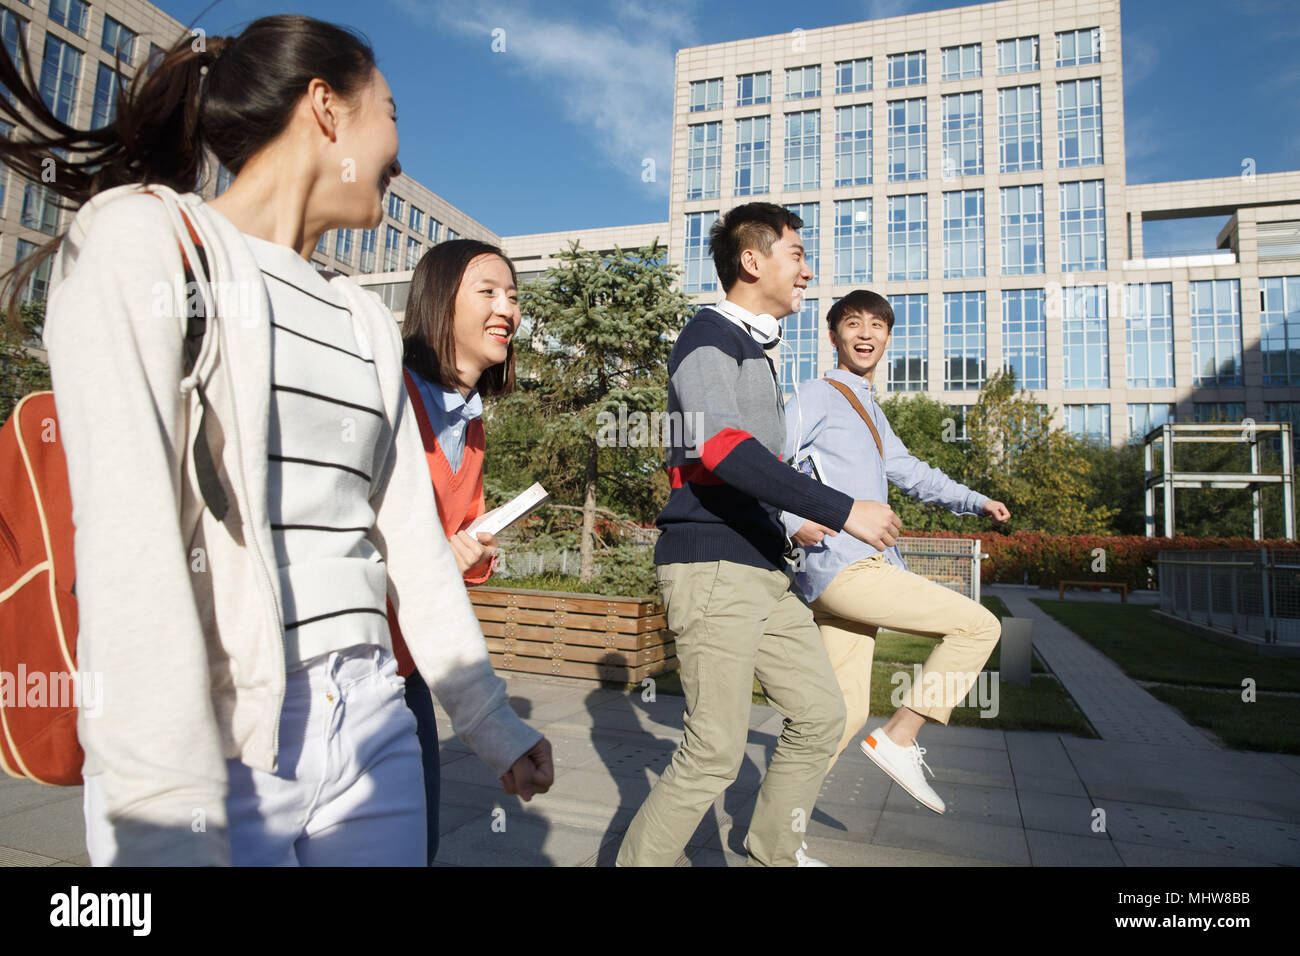 College students on campus - Stock Image